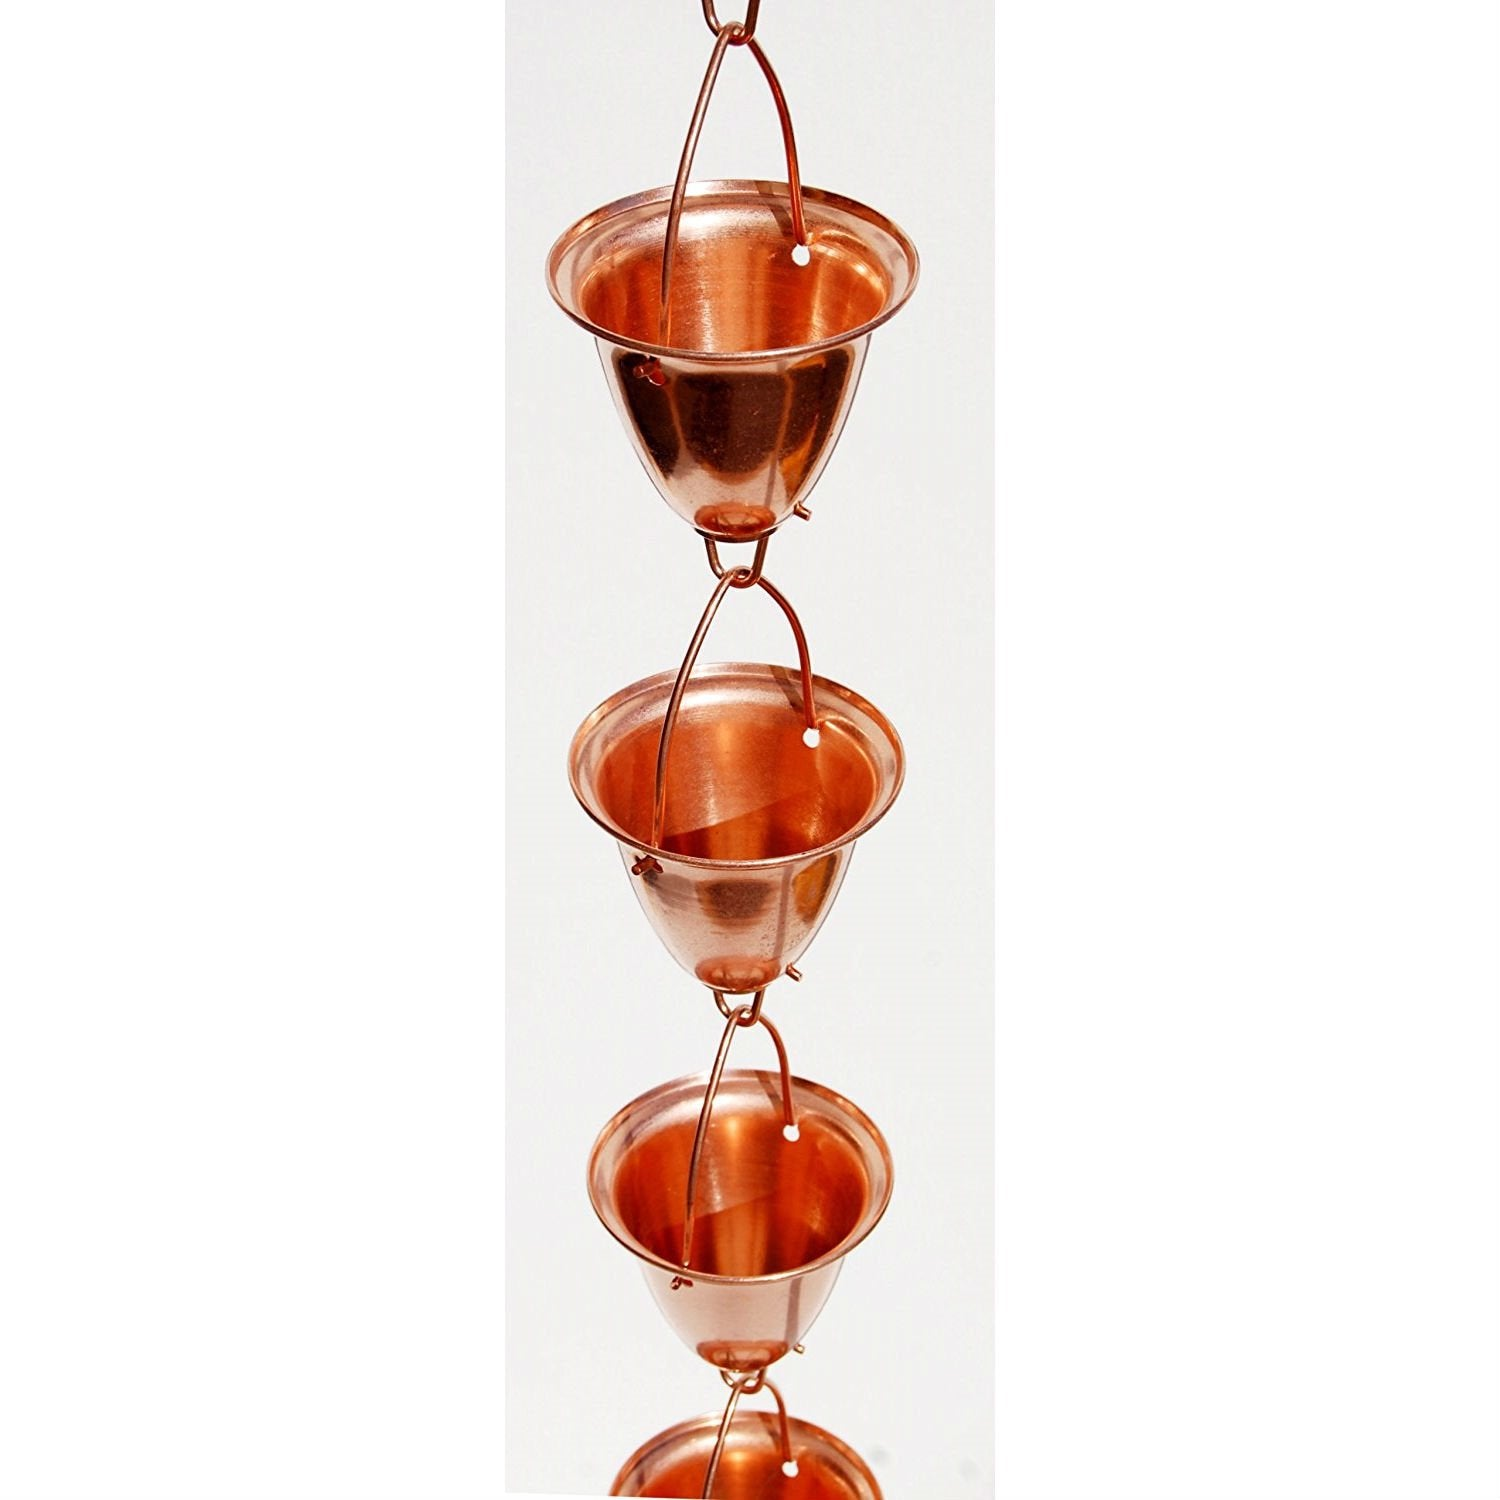 Solid 100% Copper 8-Foot Funnel Cup Rain Chain for Rain Gutter